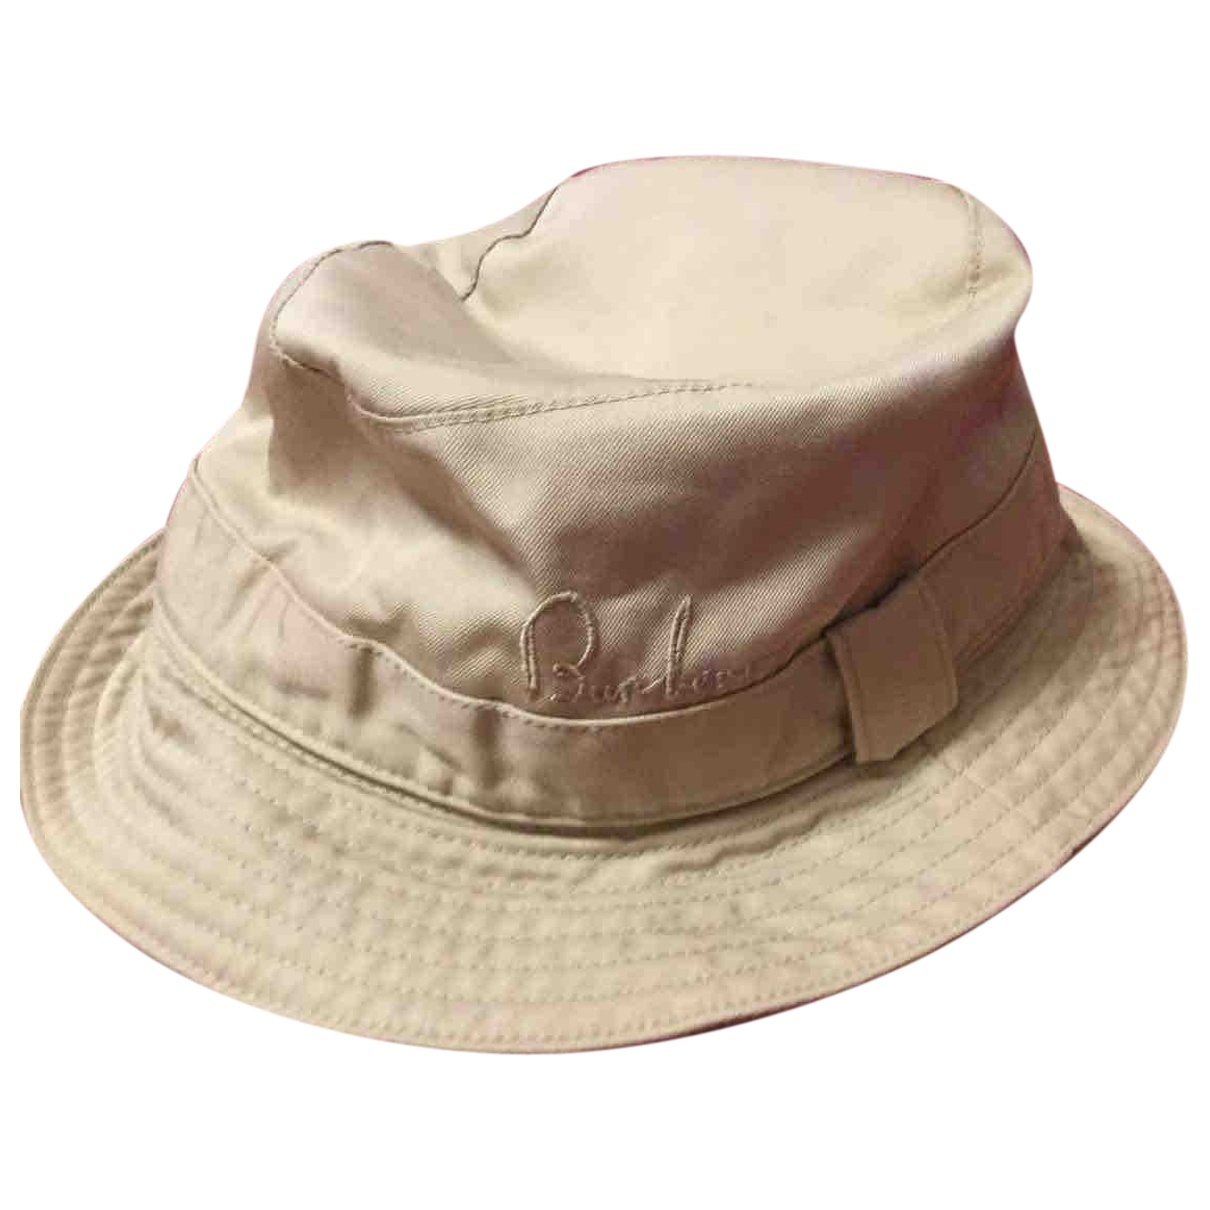 Burberry \N Beige Cotton hat for Women M International